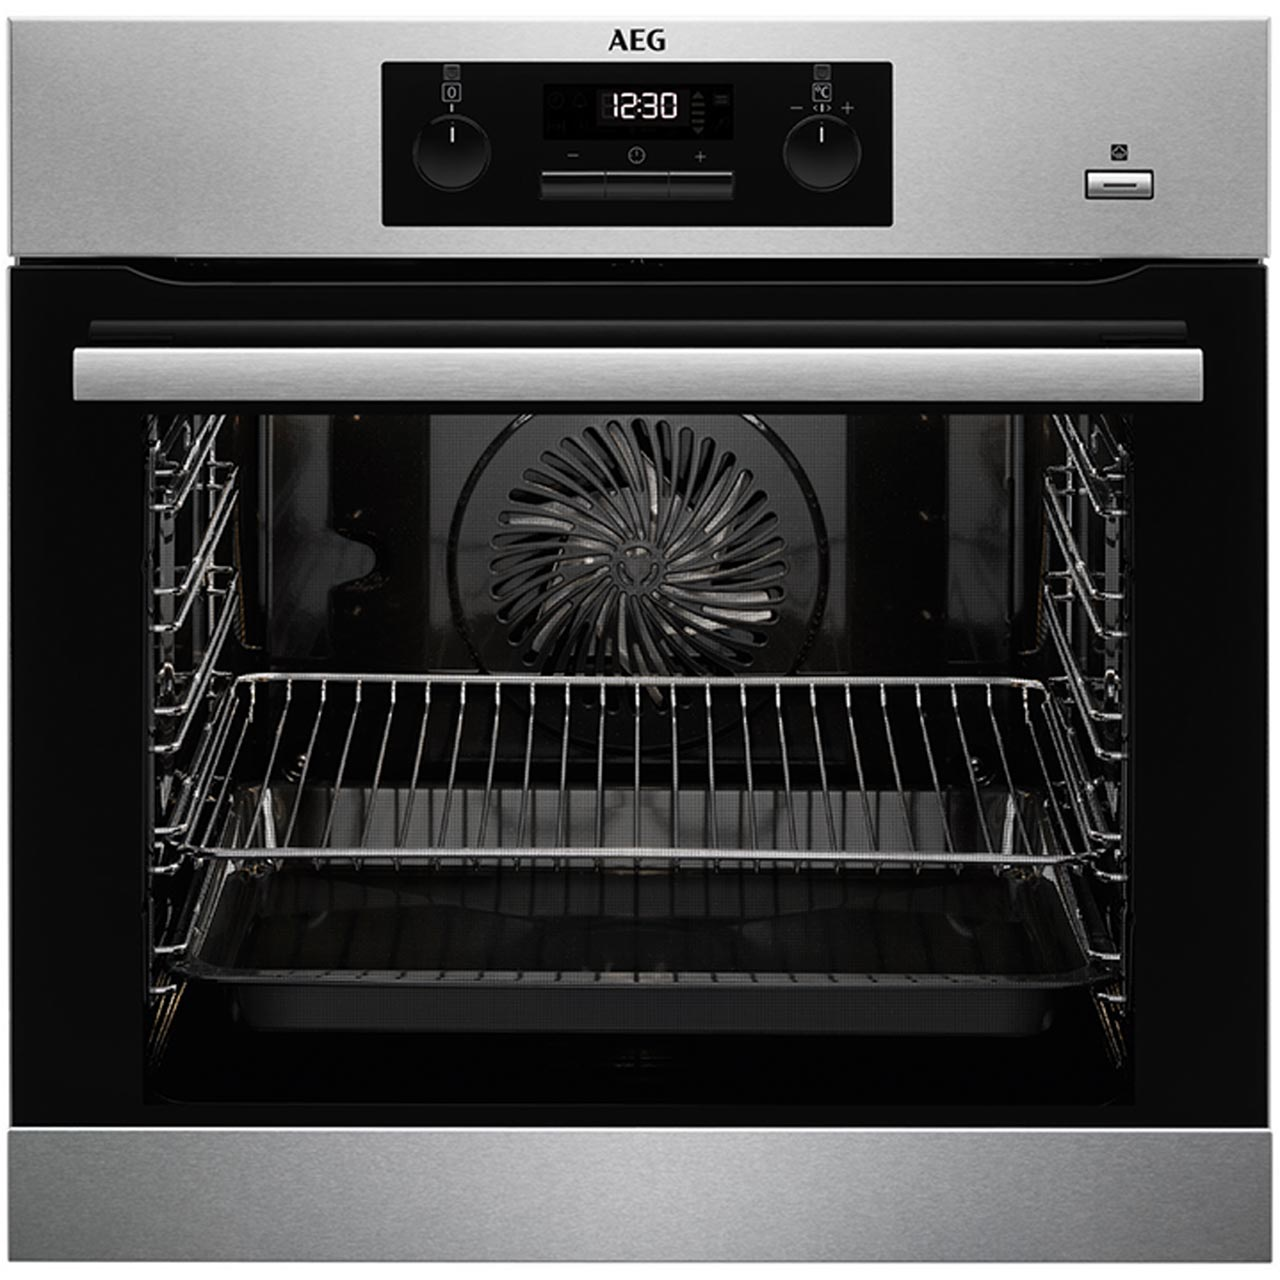 Single oven cleaned by Ultra Clean Ovens - £59